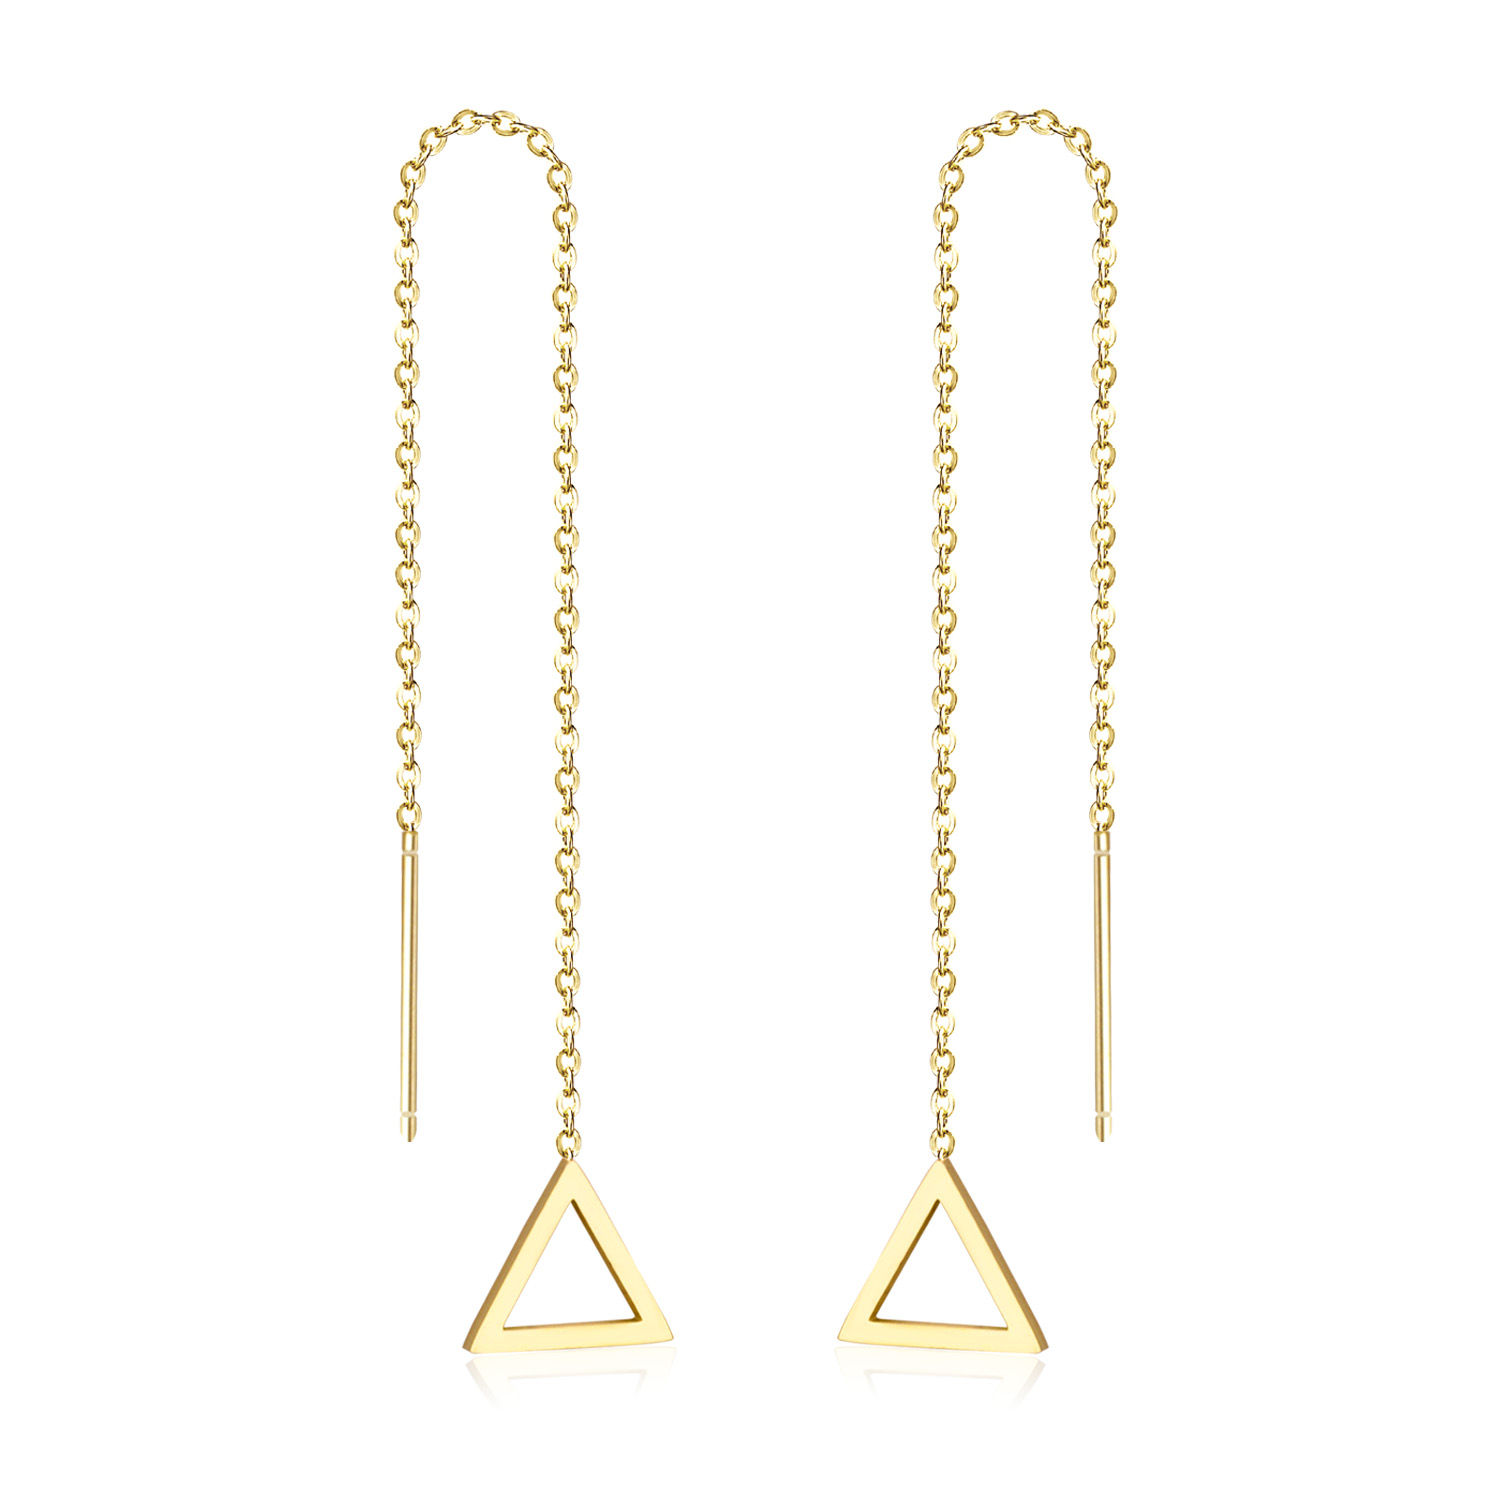 new arrival new images of factory price LUXUKISSKIDS Simple Triangle Dangle Earring Women Long Dangle ...